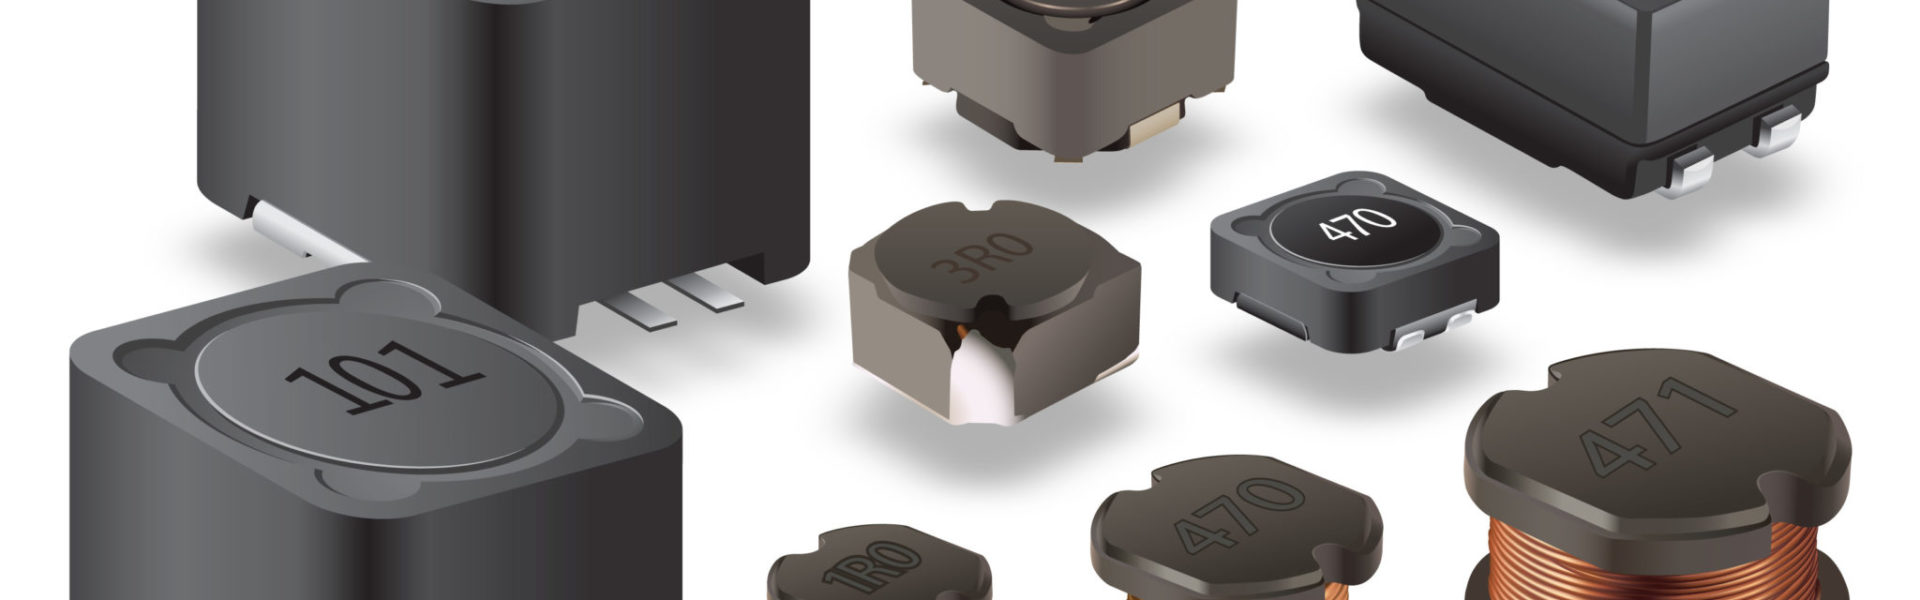 bourns-announces-new-power-inductor-series-offering-excellent-dc-dcdc-conversion-performance-for-automotive-applications-bourns-ic1474-aut_series-inductors_series-and-shunt-voltag